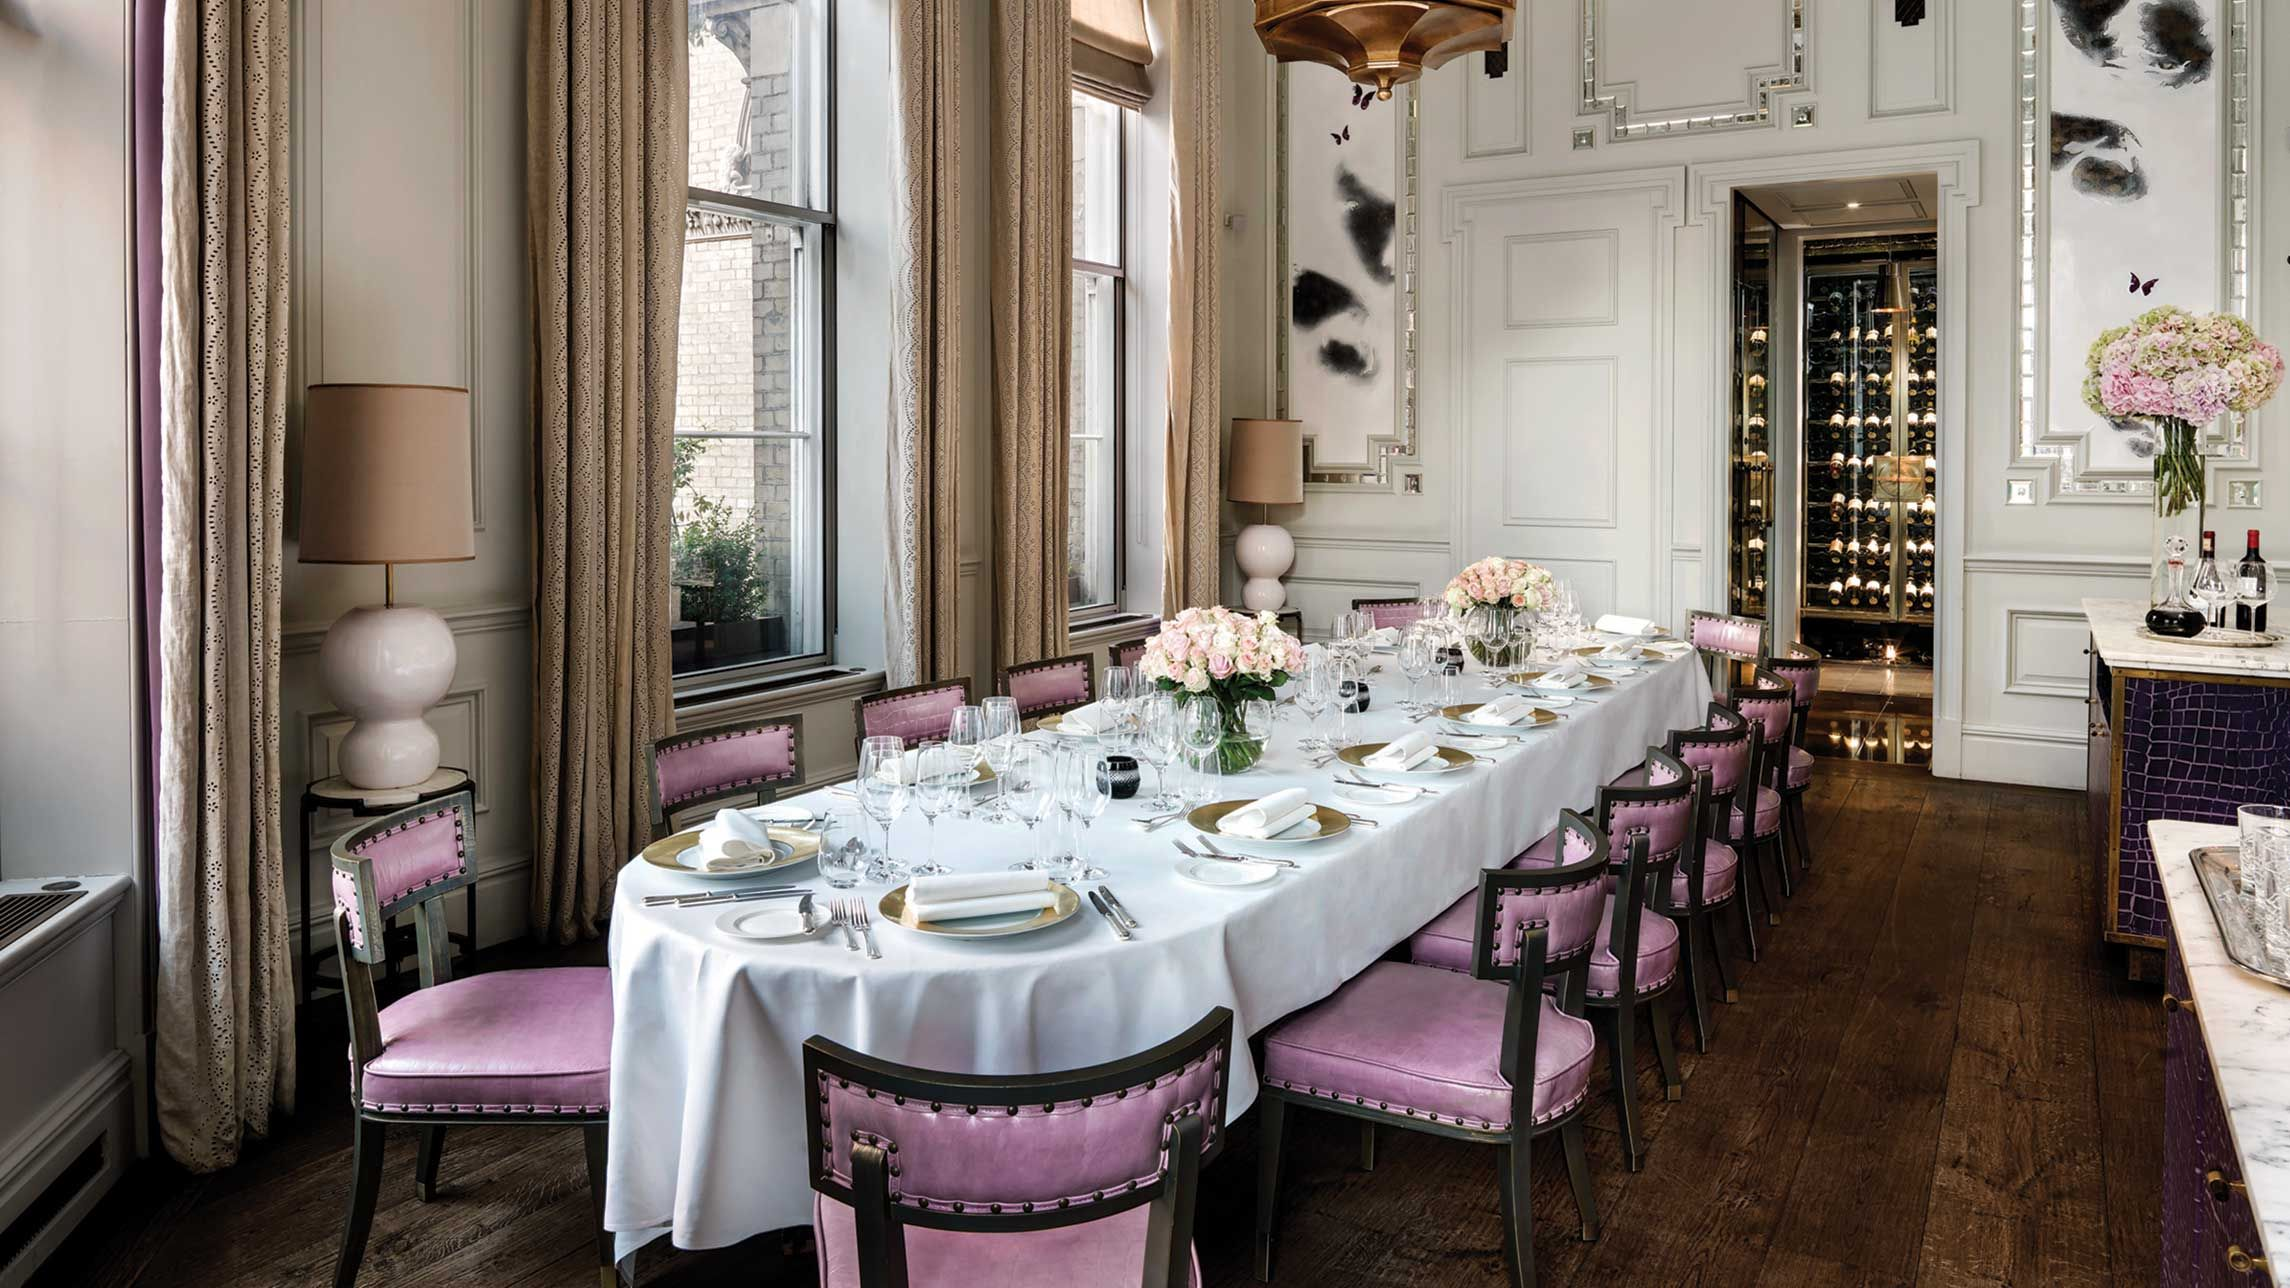 Langham Dining Room From Intimate Gatherings To Extravagant Banquets The Langham